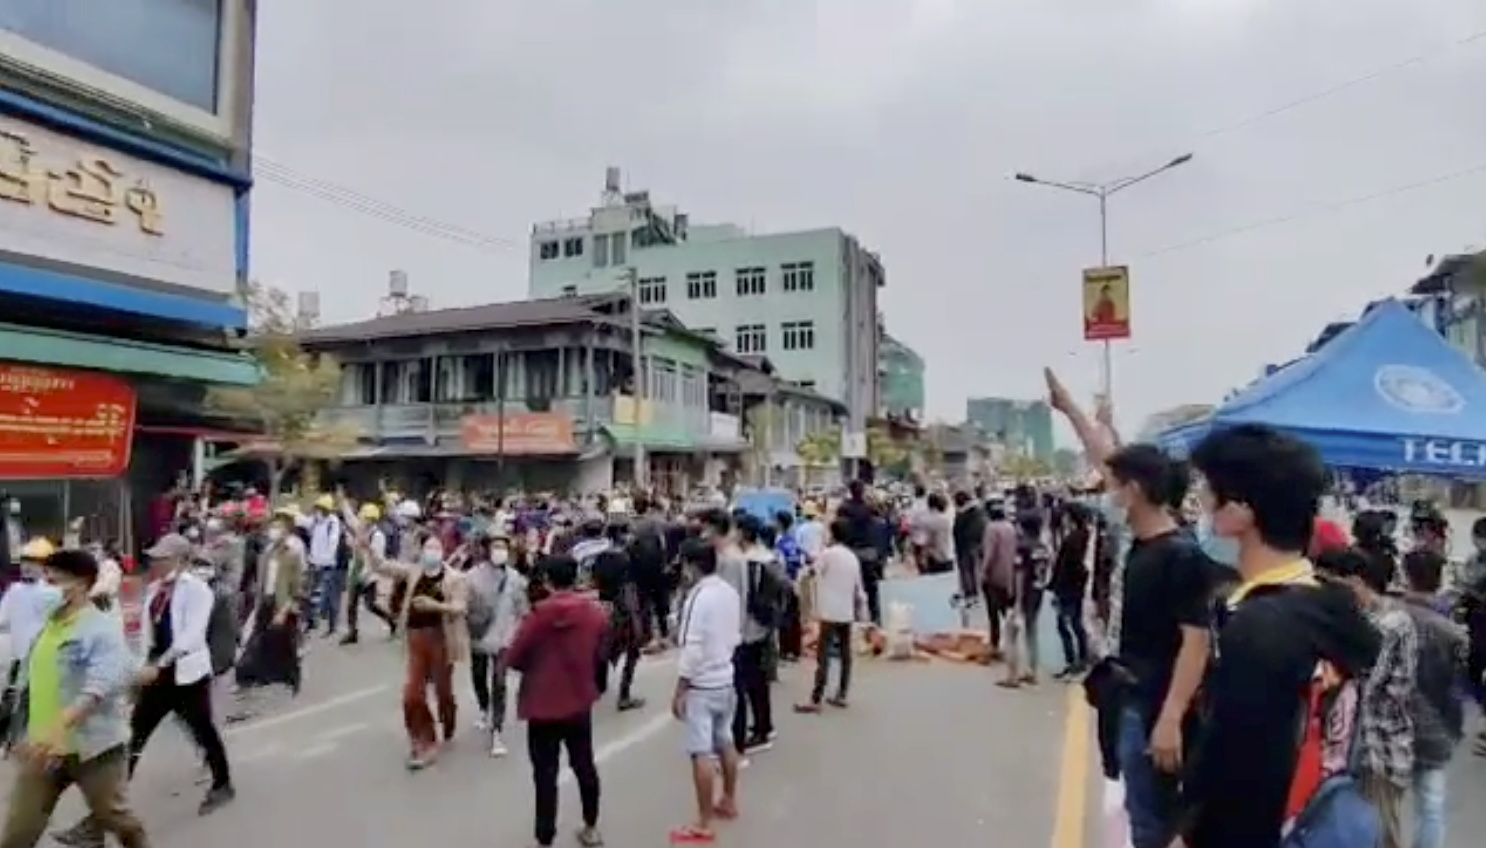 Demonstrators flash three-finger salute during a protest in Myitkyina, Myanmar March 8, 2021 in this still image obtained by Reuters from a video.